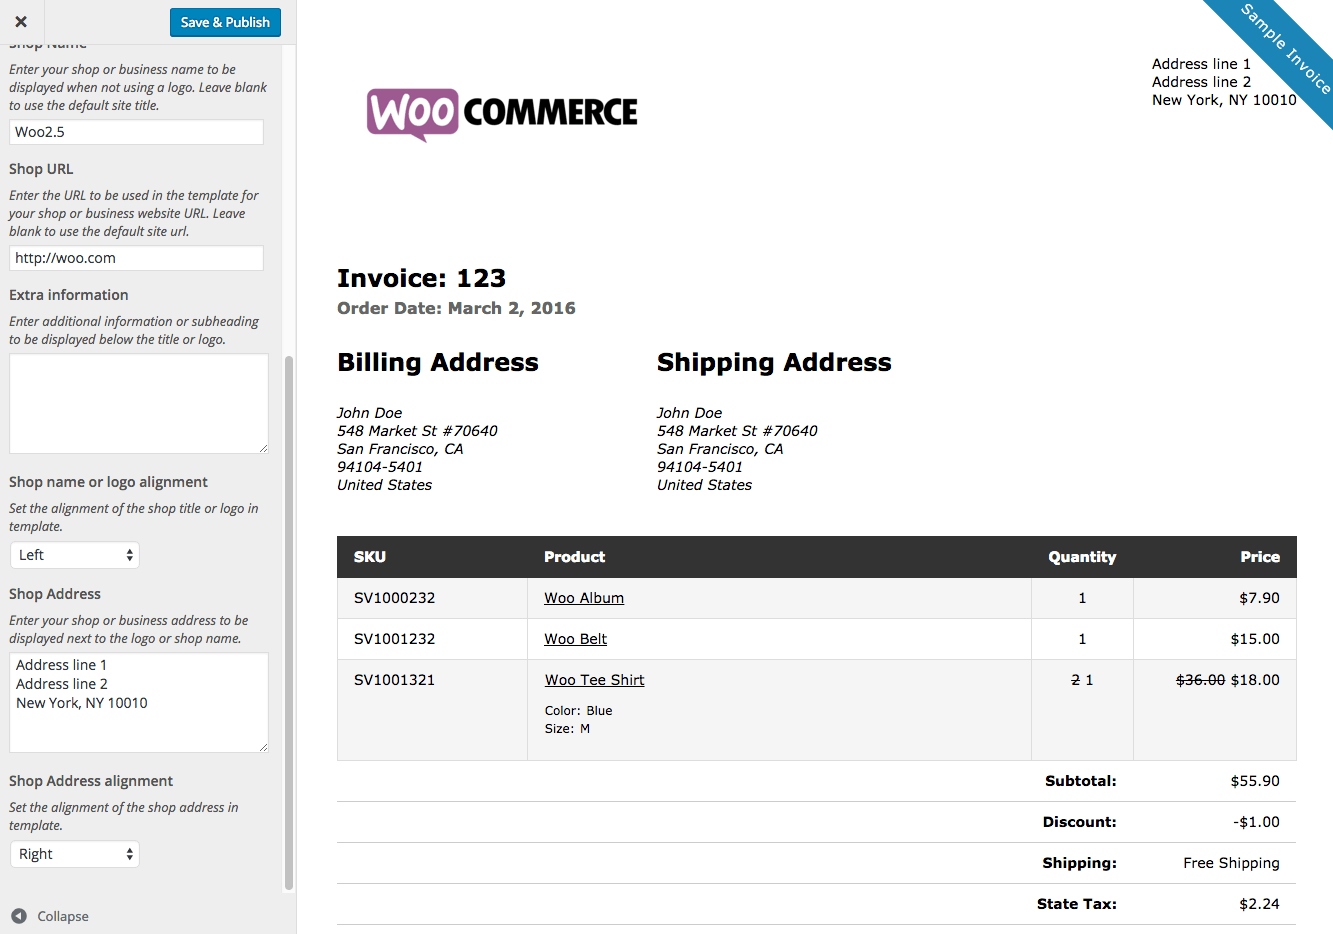 Aaaaeroincus  Scenic Woocommerce Print Invoices Amp Packing Lists  Woocommerce Docs With Lovable Woocommerce Print Invoices  Packing Lists Customizer With Beautiful Invoice Business Also Best Small Business Invoice Software In Addition Invoice Print And Print Blank Invoice As Well As Quickbooks Invoice Import Additionally Woocommerce Invoice Plugin From Docswoocommercecom With Aaaaeroincus  Lovable Woocommerce Print Invoices Amp Packing Lists  Woocommerce Docs With Beautiful Woocommerce Print Invoices  Packing Lists Customizer And Scenic Invoice Business Also Best Small Business Invoice Software In Addition Invoice Print From Docswoocommercecom